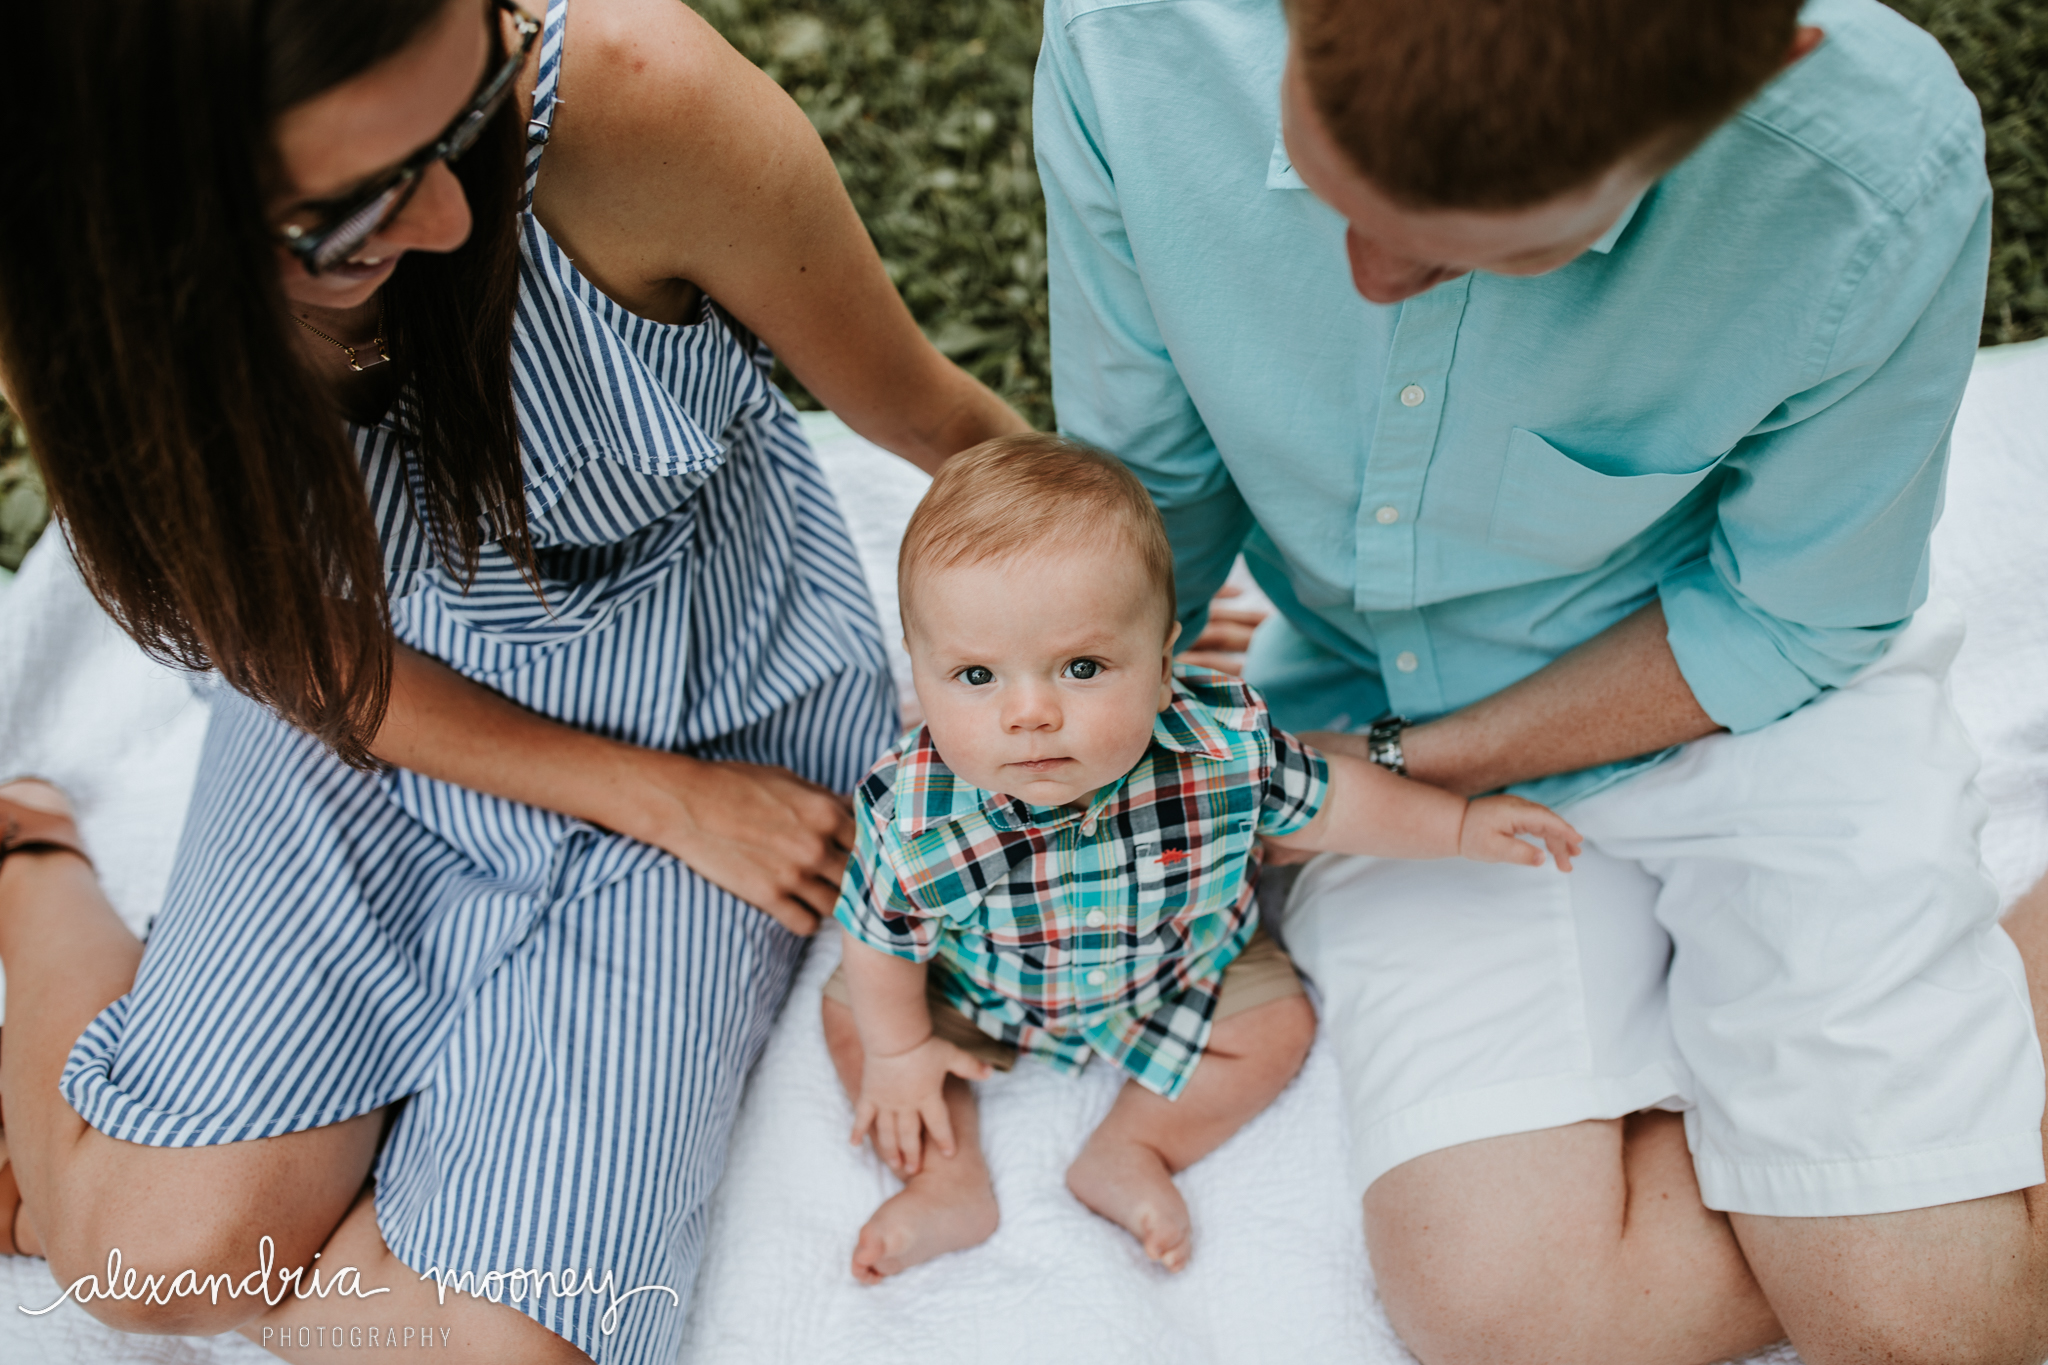 Connor_6monthsold_WATERMARKED-8.jpg